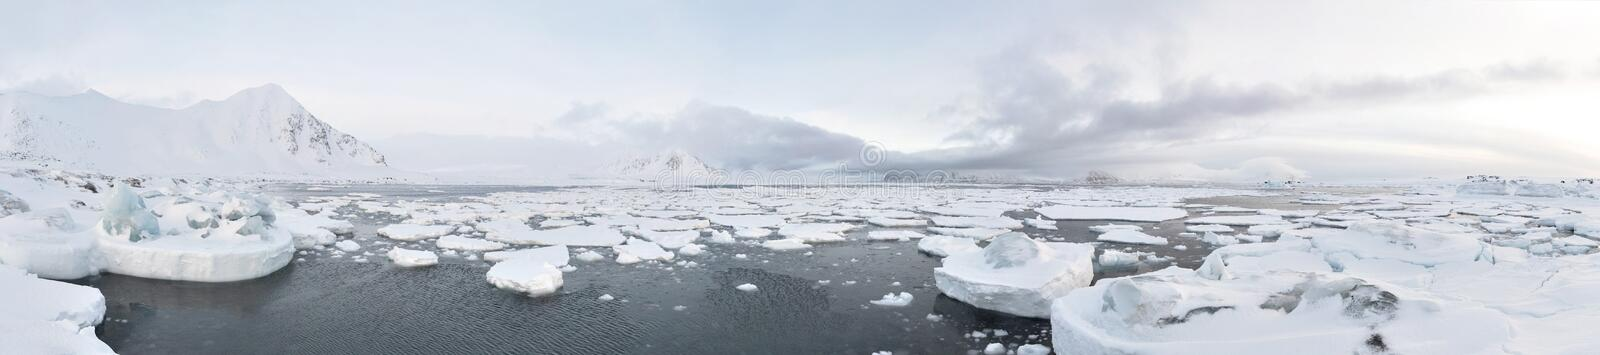 Arctic landscape - PANORAMA. Arctic winter landscape - frozen fjord and glacier royalty free stock photo